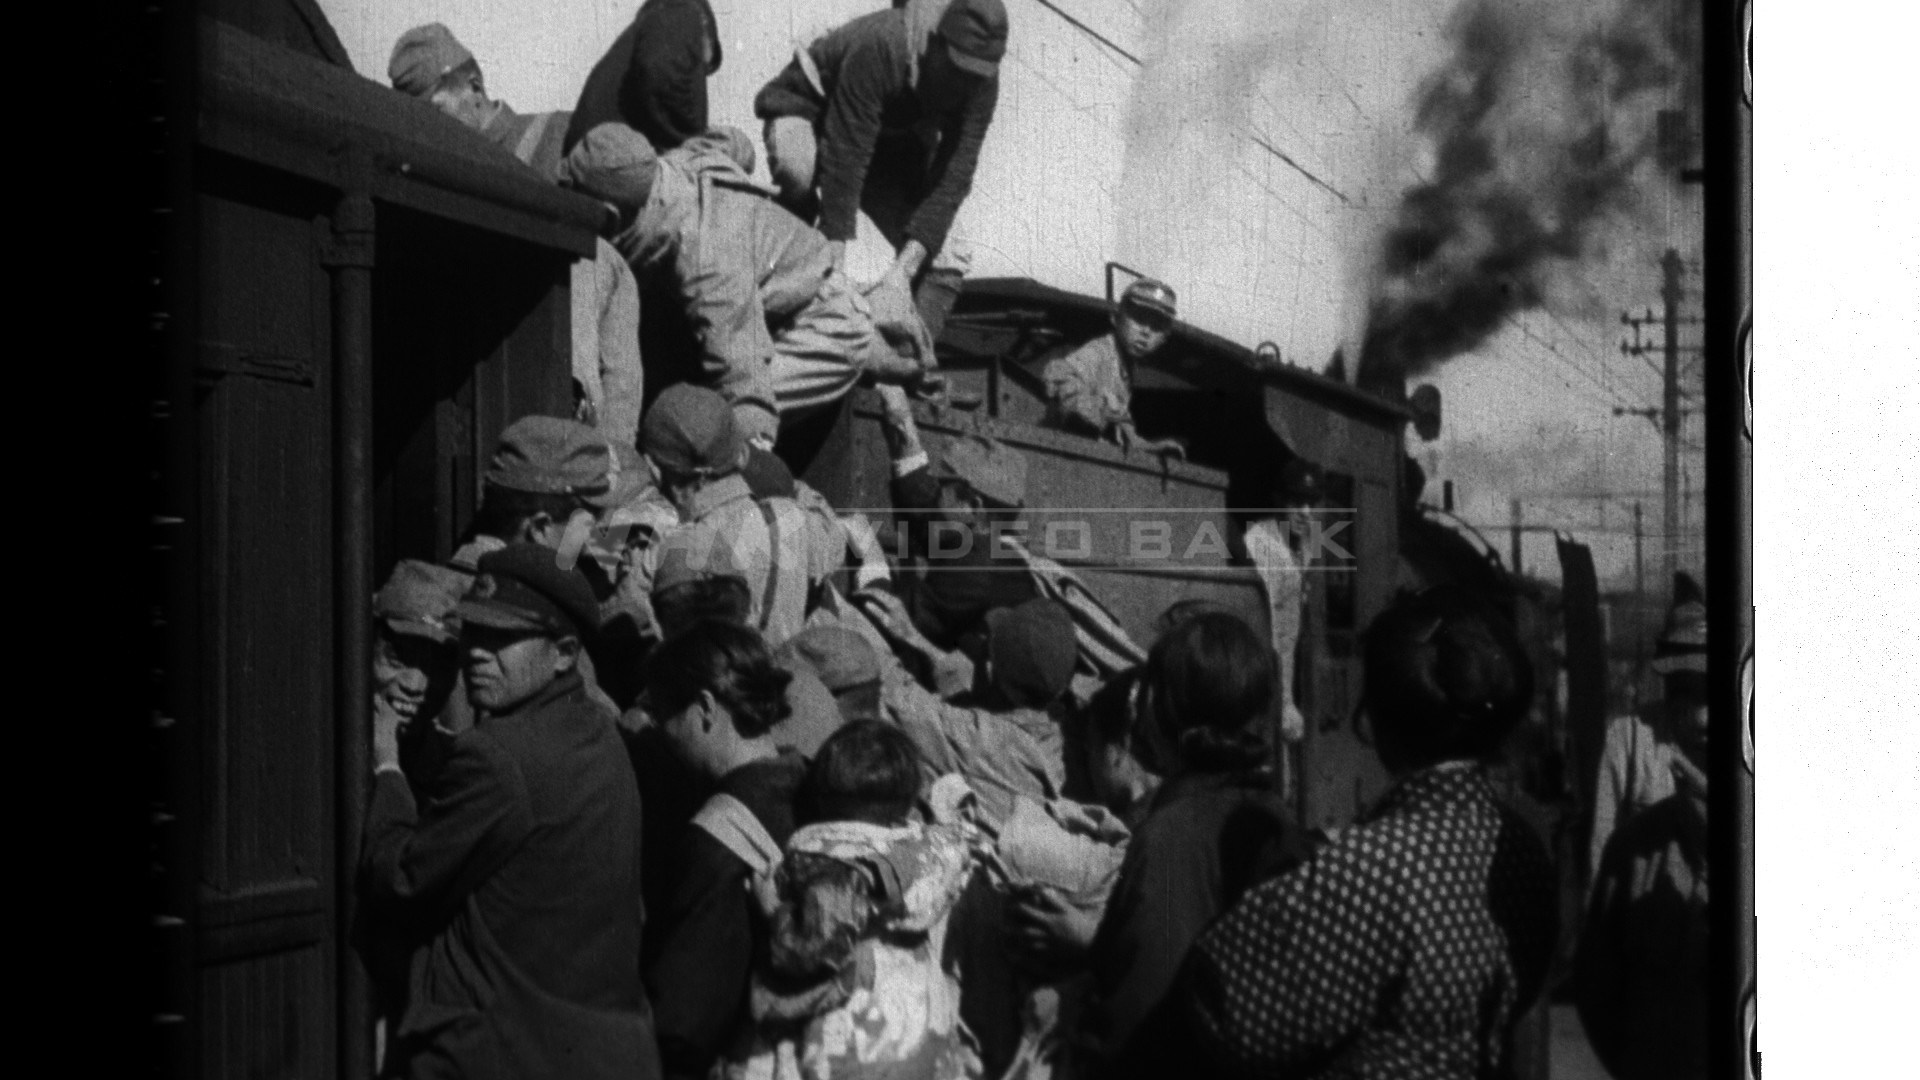 Train heading for Tokyo overflow with passengers (1945)